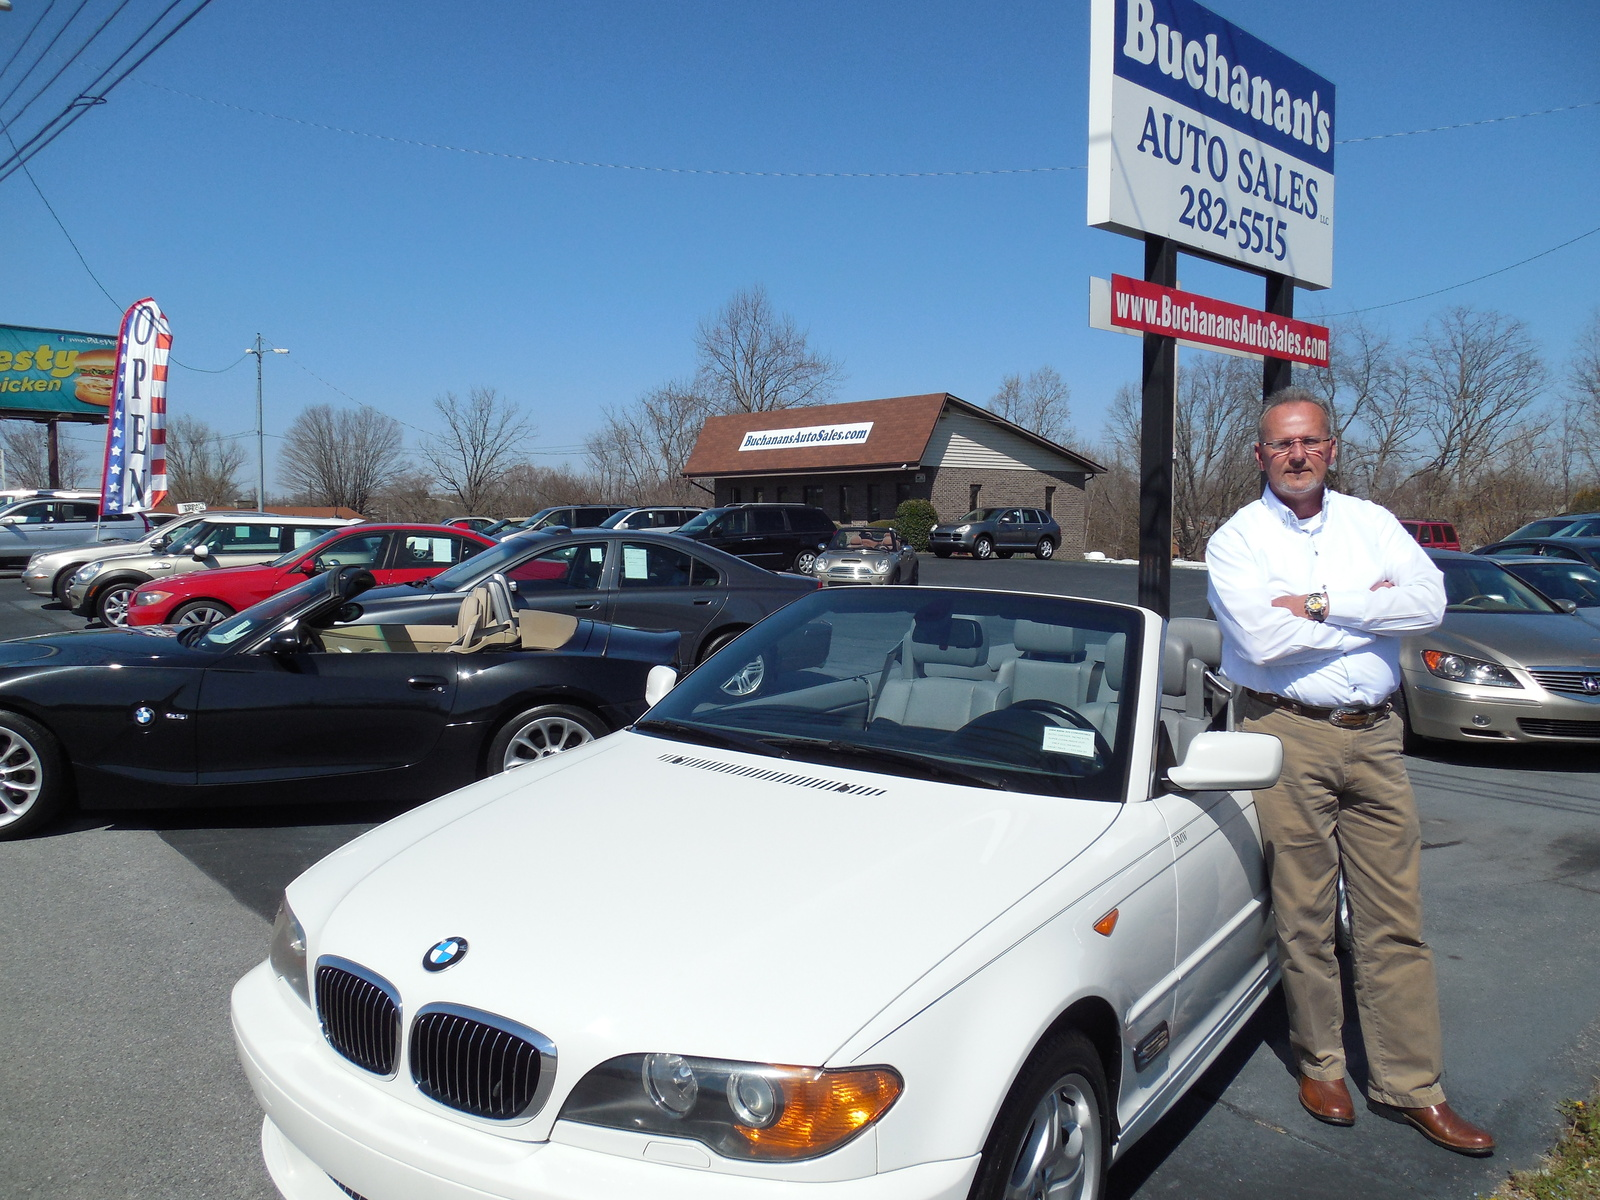 buchanan s auto sales johnson city tn read consumer reviews browse used and new cars for sale